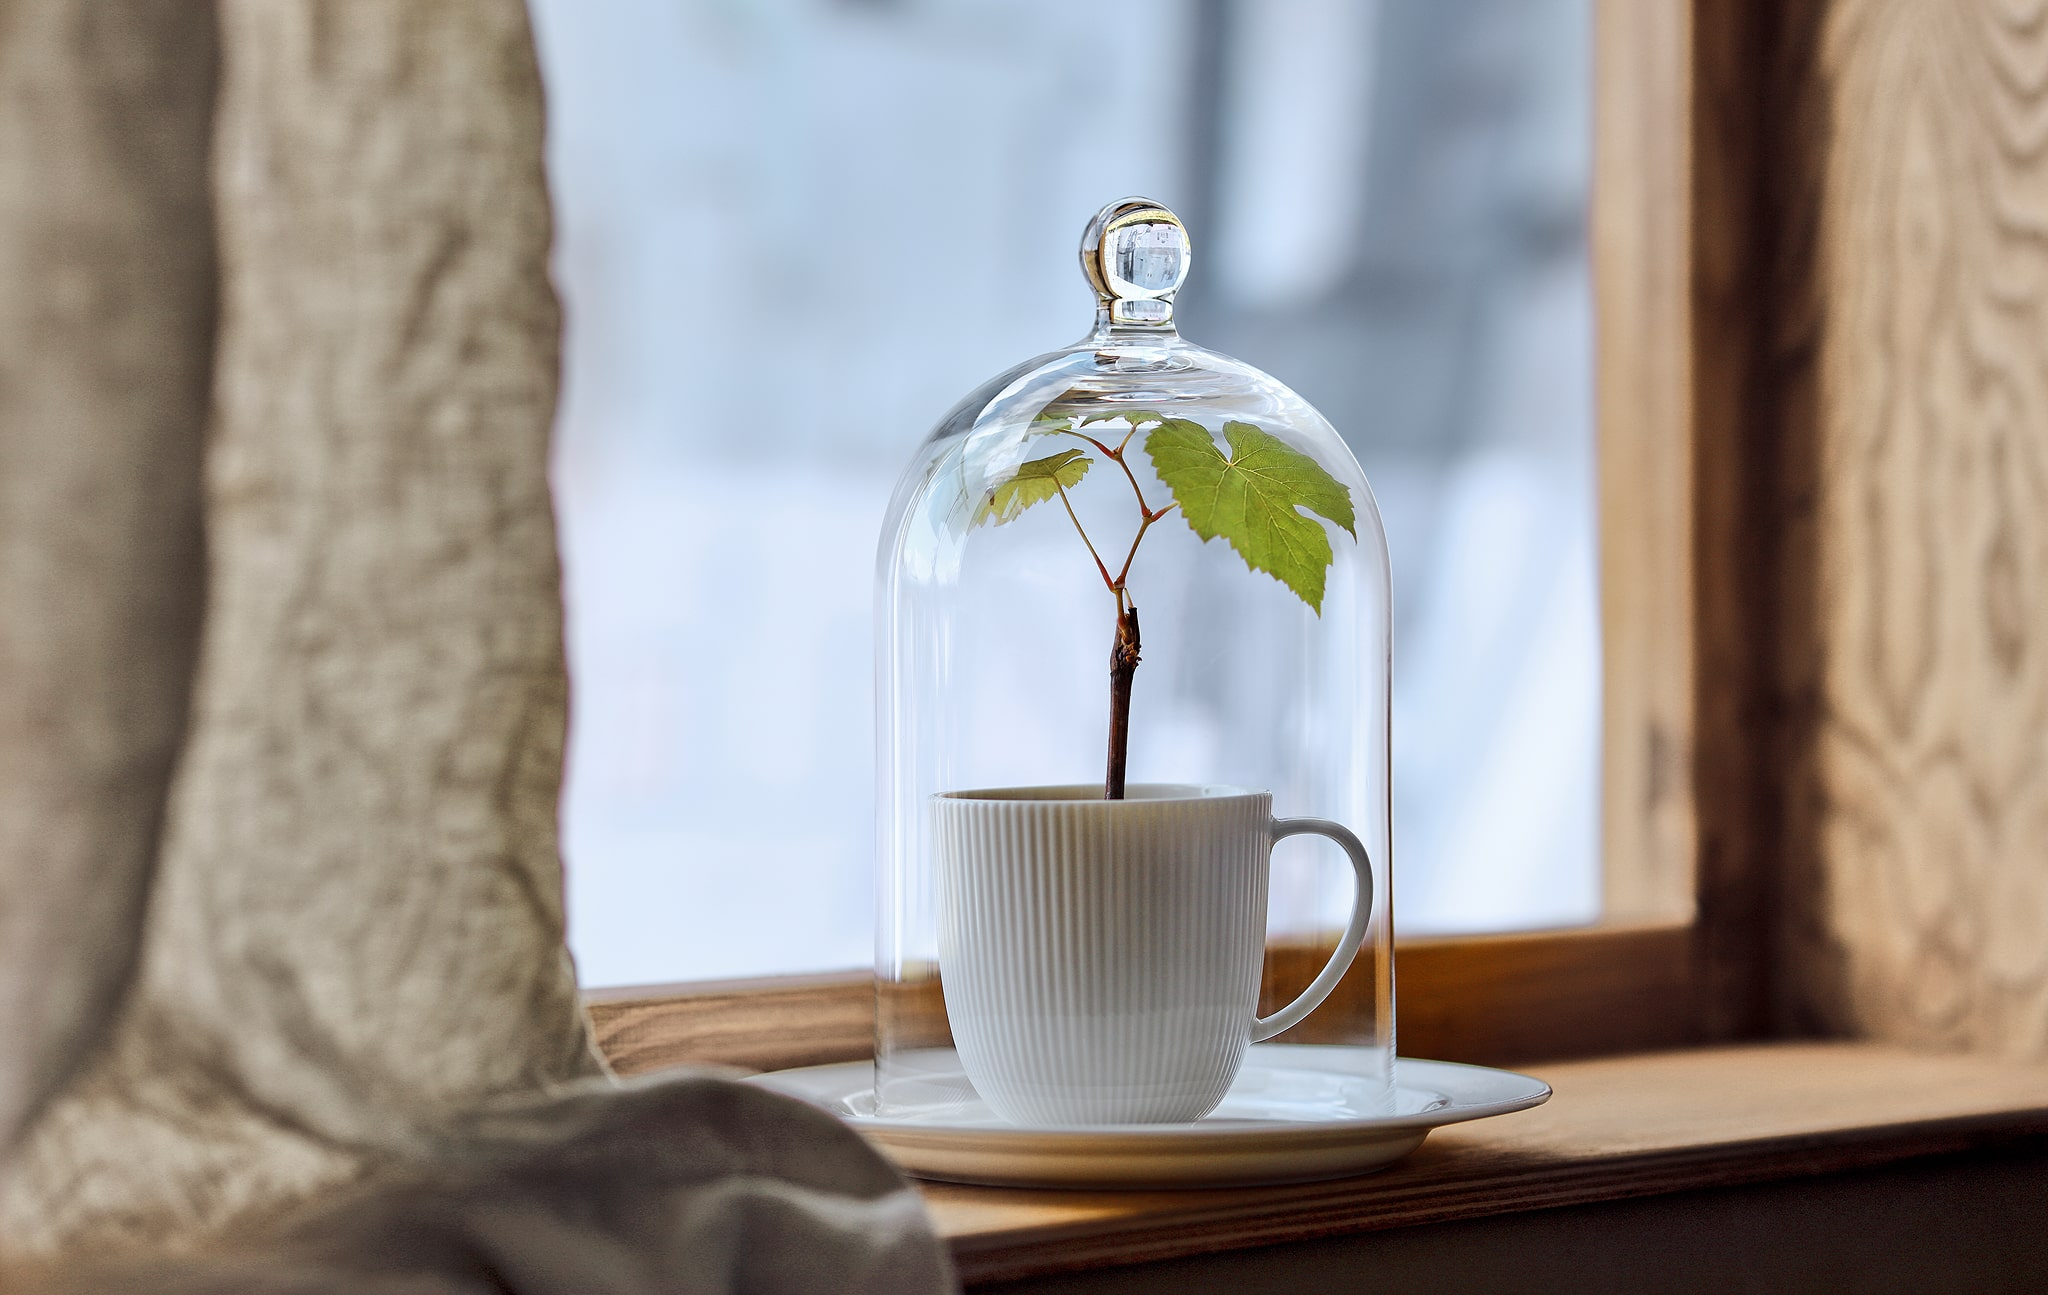 A MORGONTID glass dome over a tiny plant set in a tea mug placed in a shallow window sill, a wintery landscape behind it.